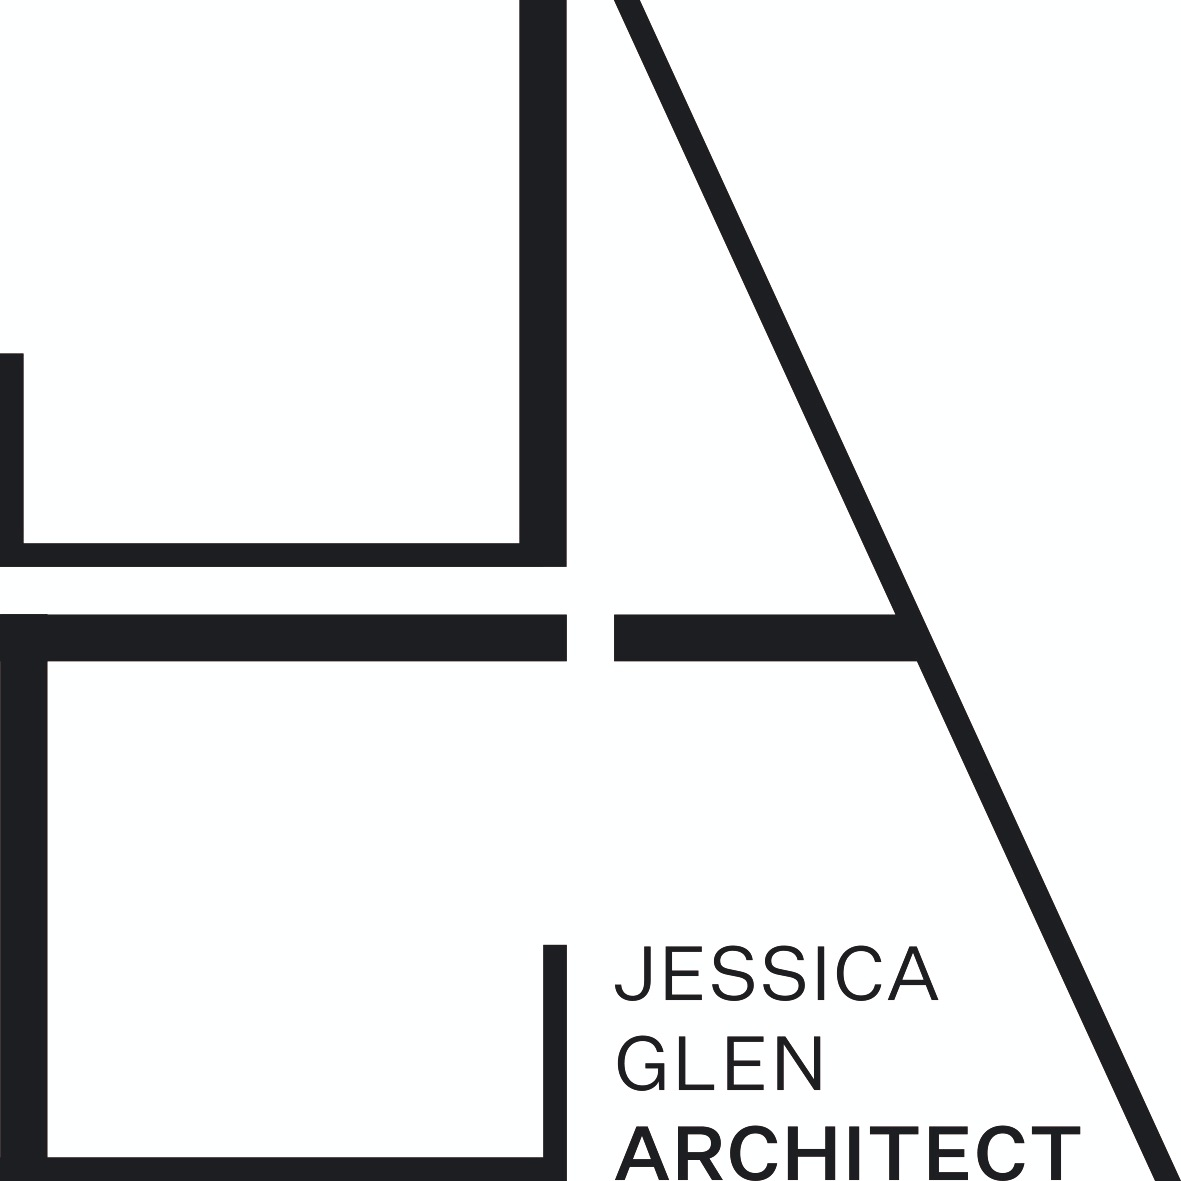 Jessica Glen Architect